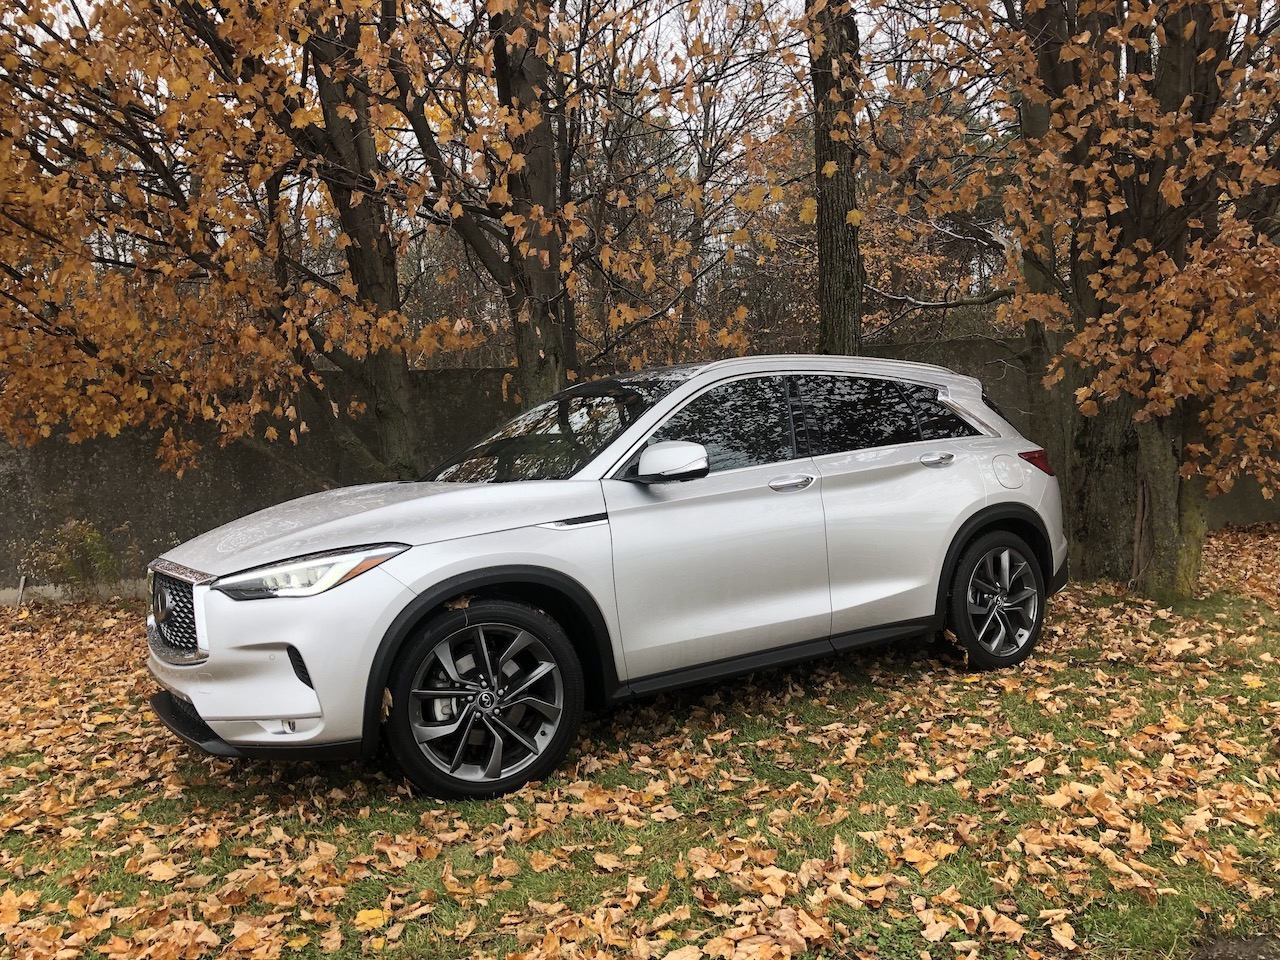 Best Mid-Size Premium Utility Vehicle 2020 Canadian Car of the Year